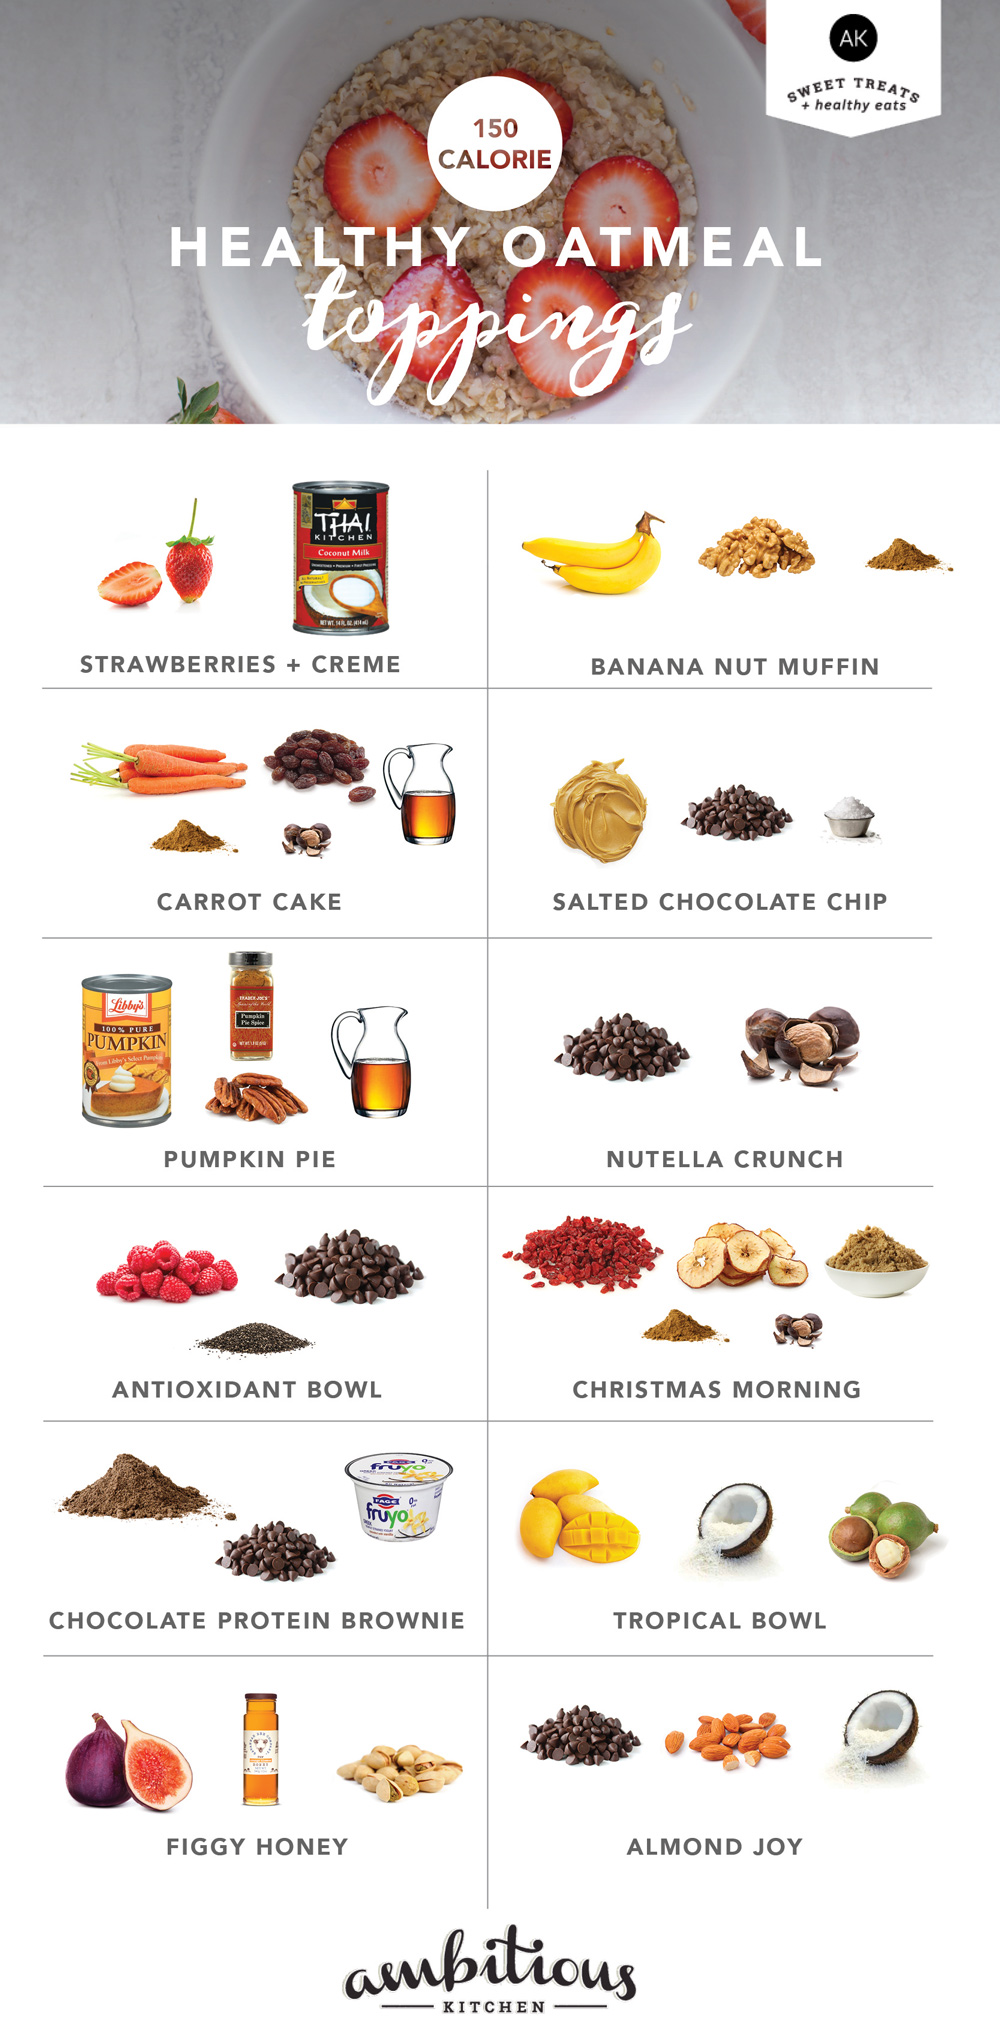 Oatmeal clipart plain Calorie Calorie Healthy Toppings toppings